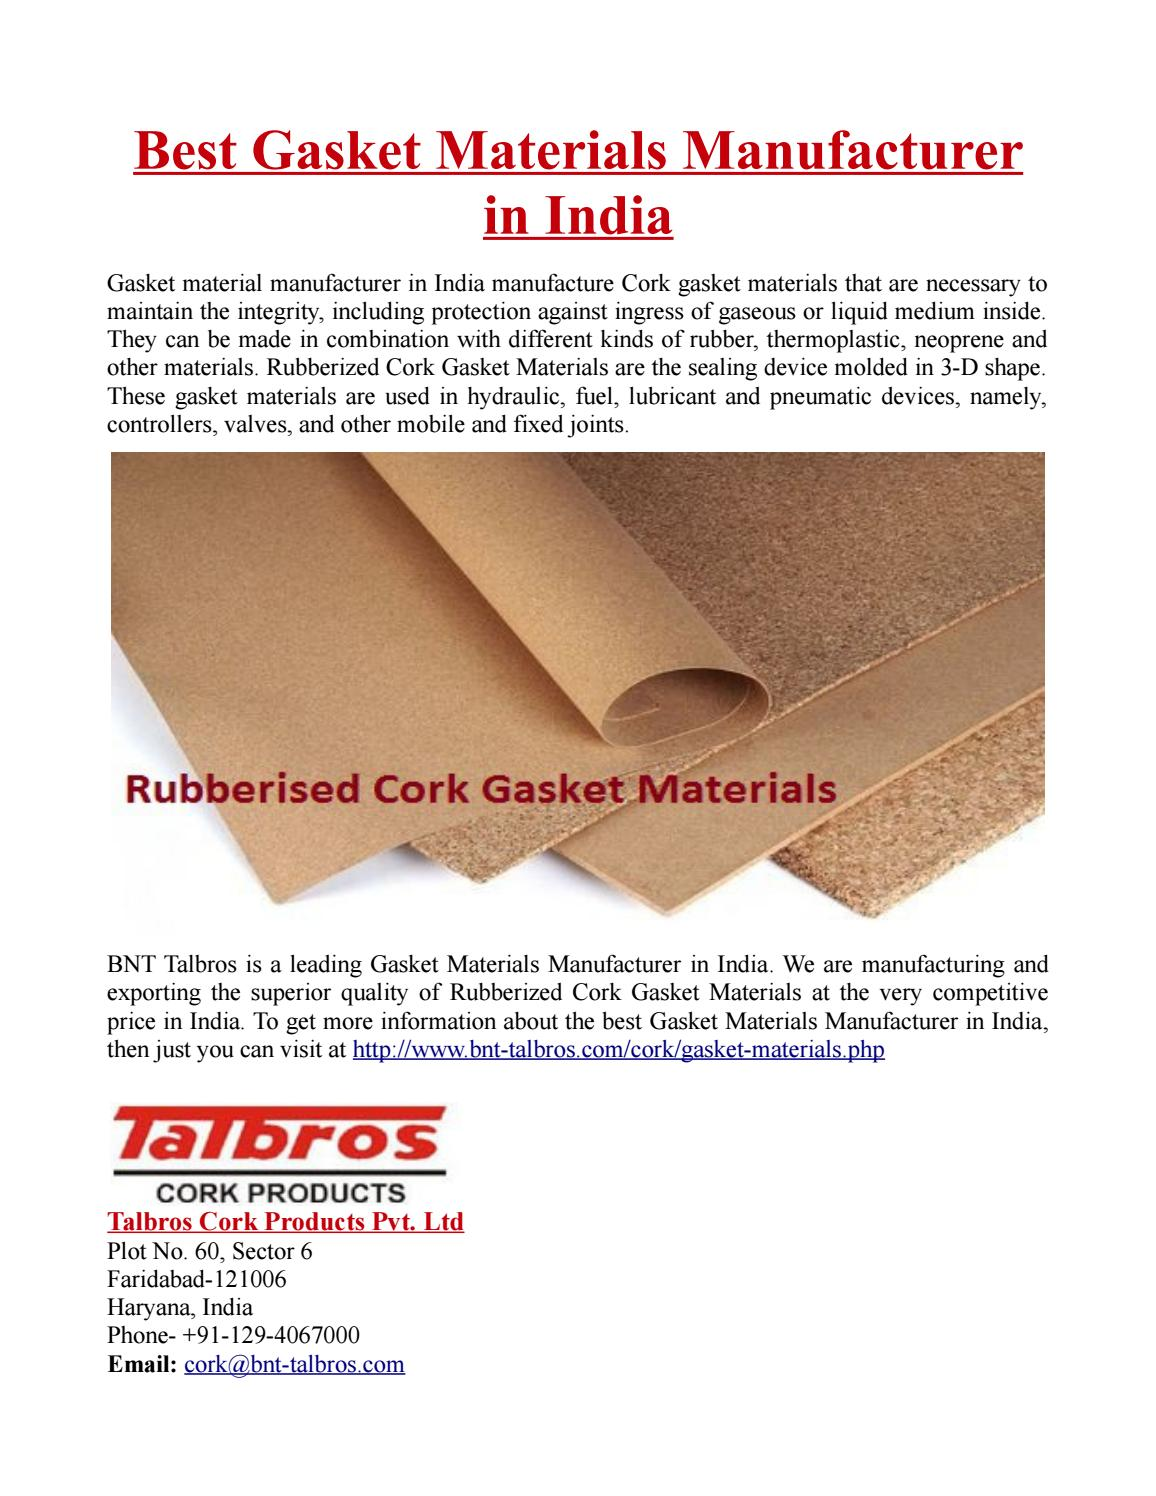 Best Gasket Materials Manufacturer in India by Crazzy Paul